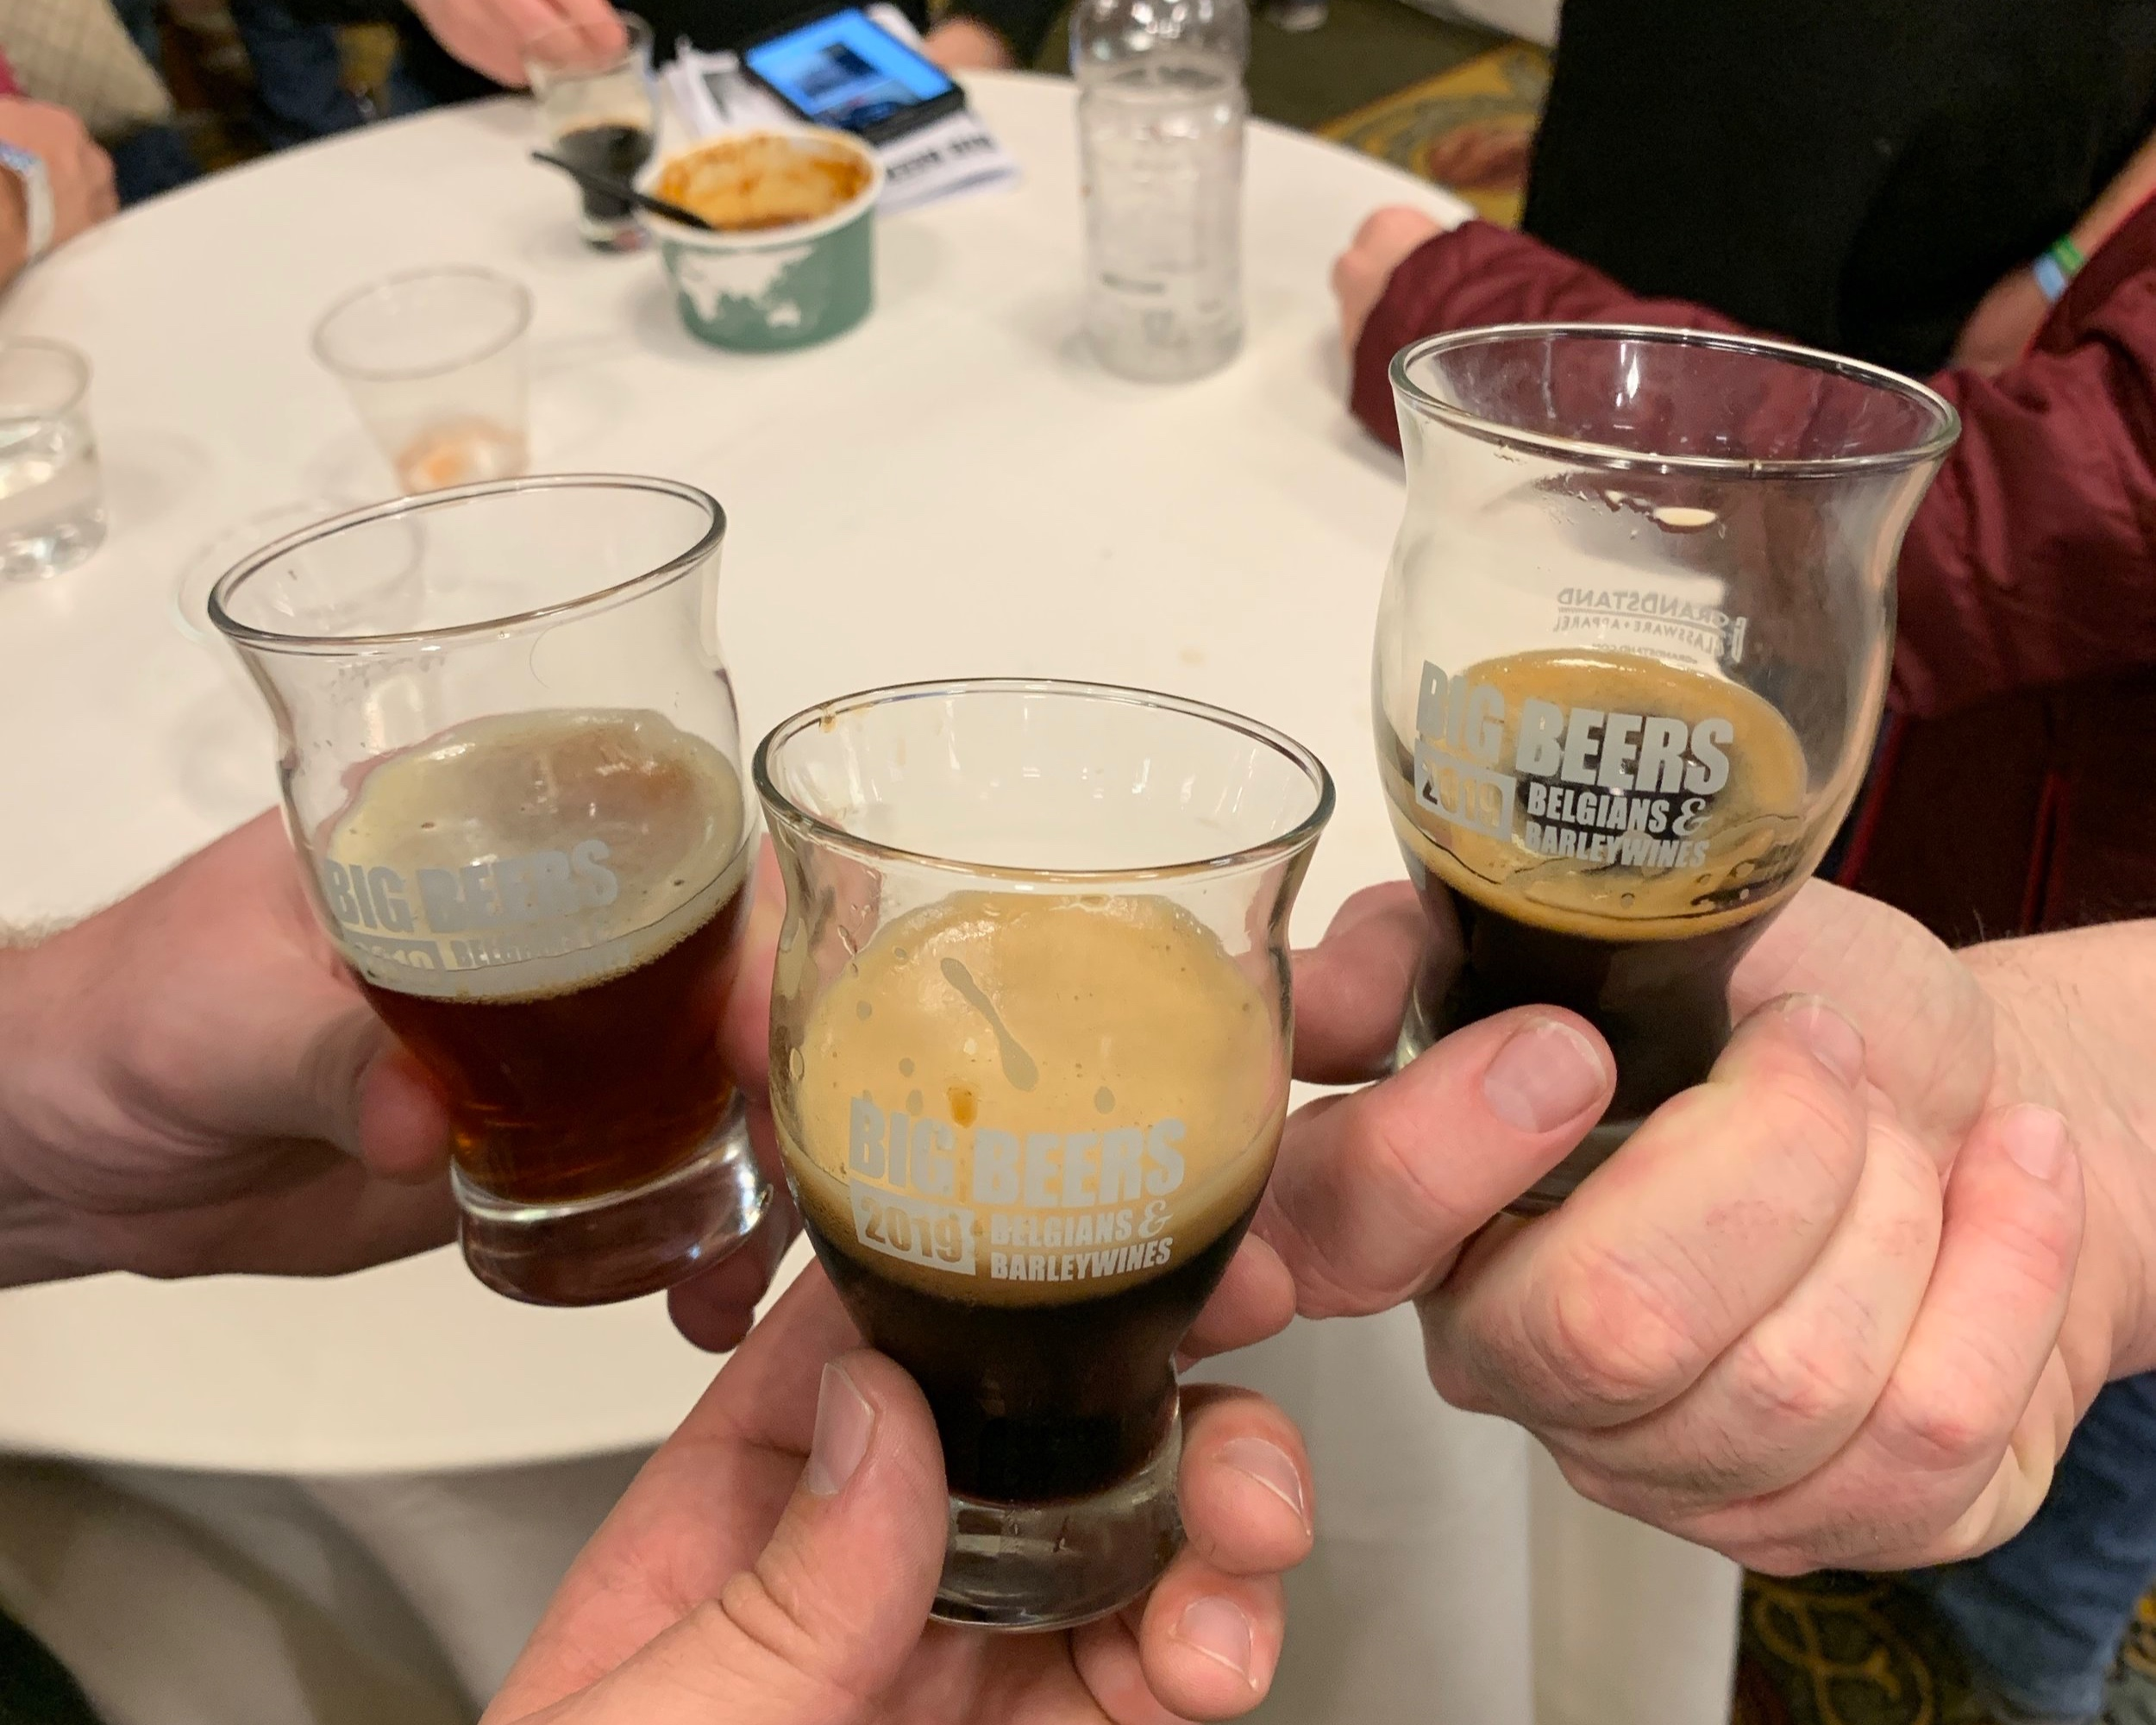 Big Beers was the place to be Saturday, Jan. 12. Photo: Neill Pieper